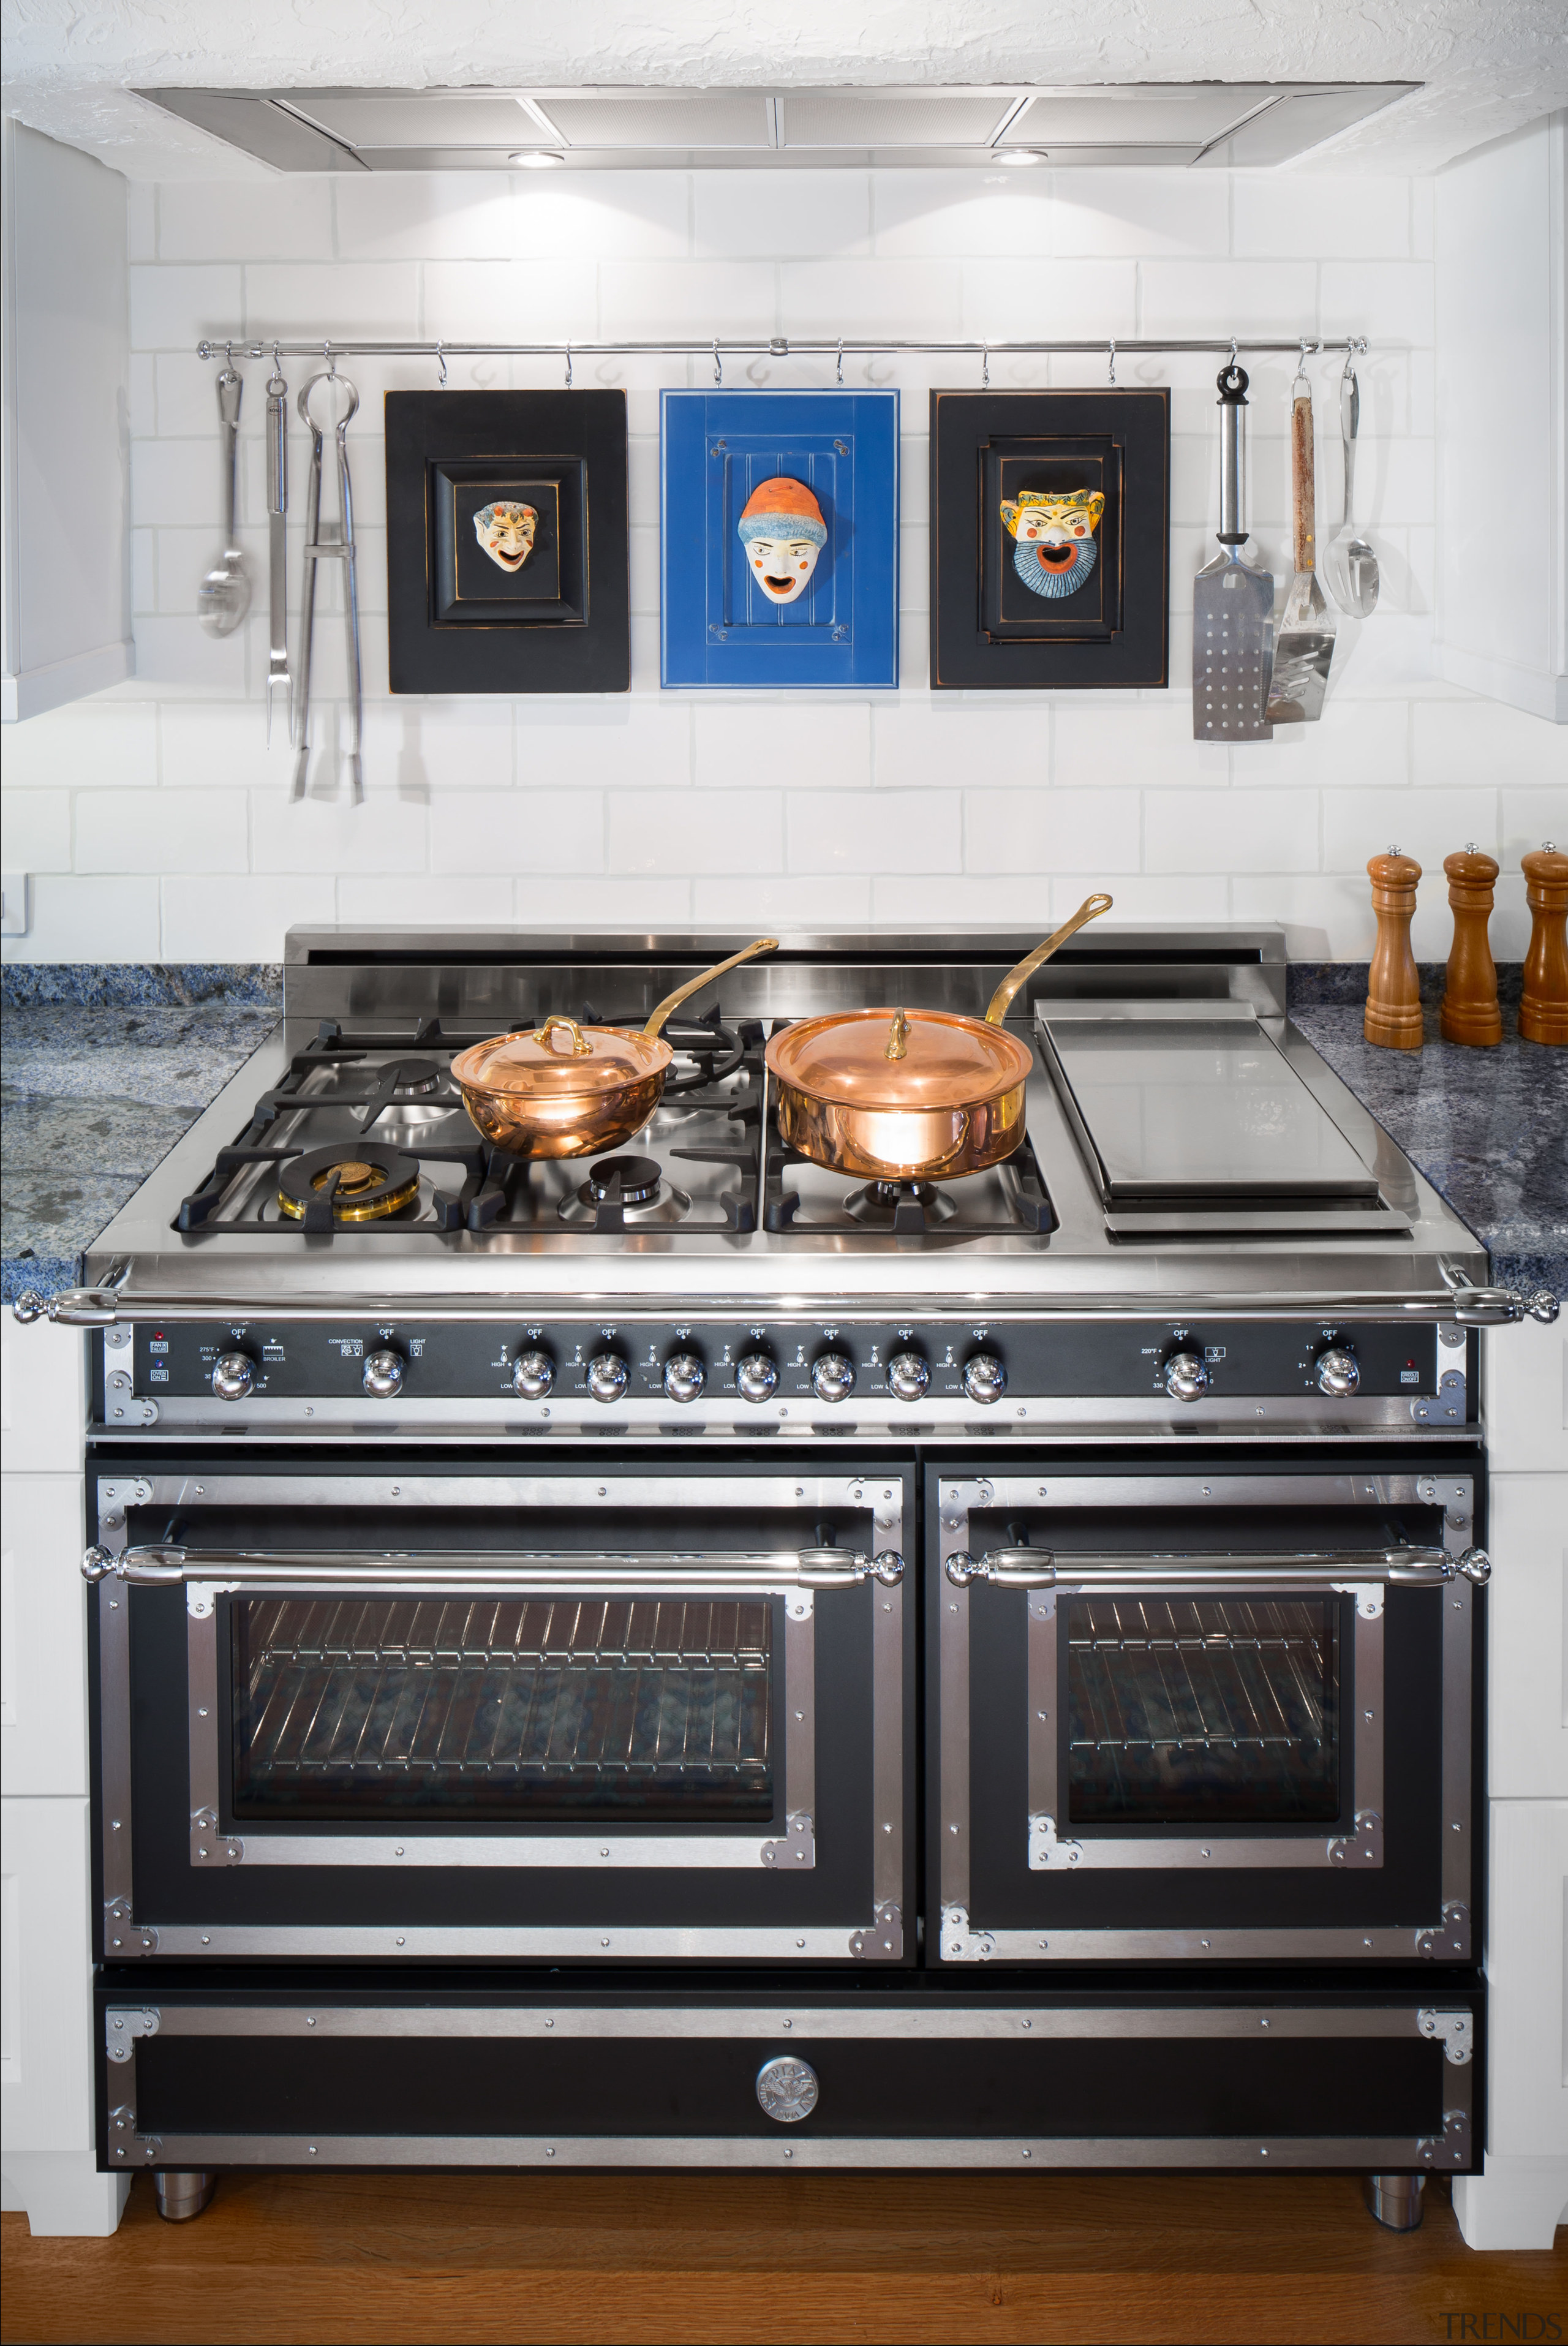 This new kitchen by designer Elina Katsioula-Beall features countertop, gas stove, home appliance, kitchen, kitchen appliance, kitchen stove, major appliance, oven, stove, white, black